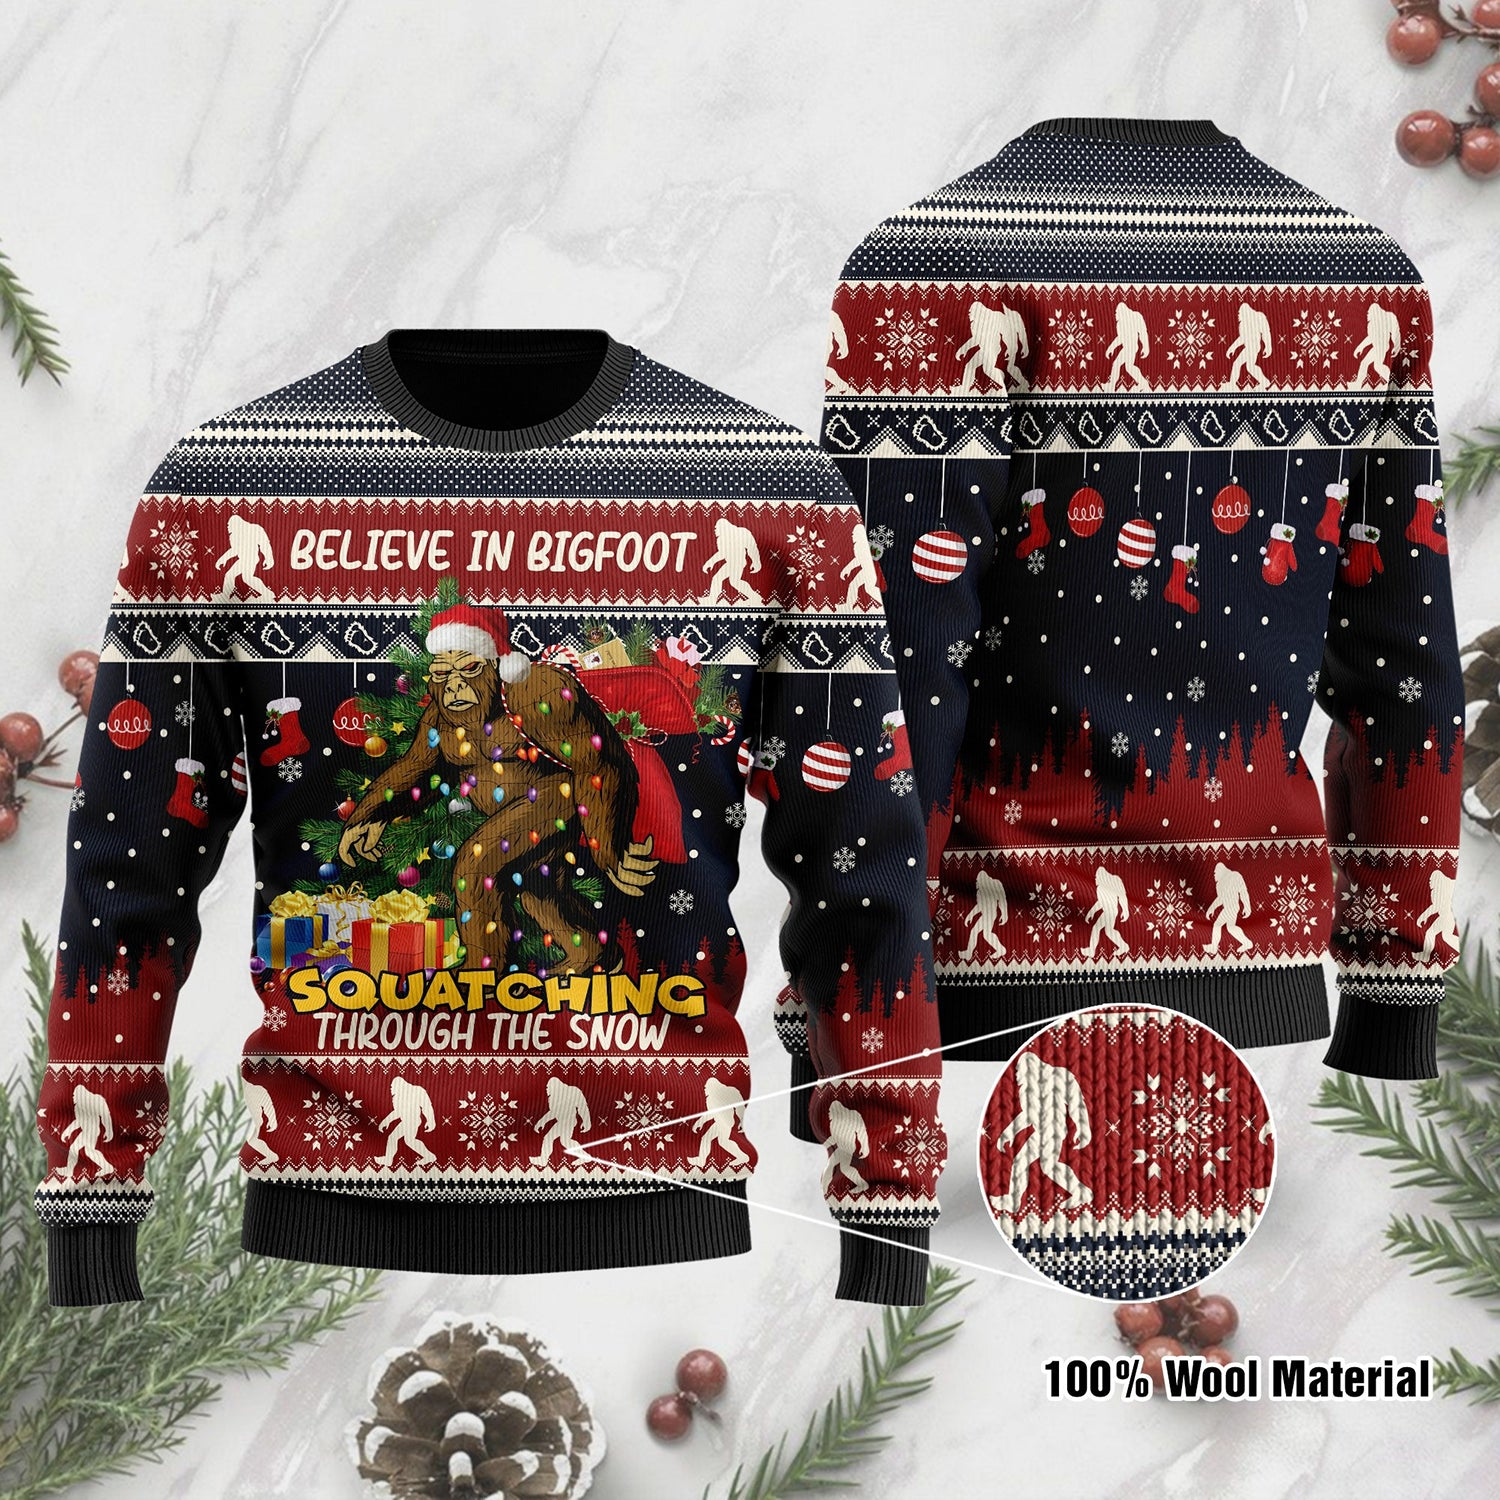 Bigfoot Ugly Sweatshirt For Bigfoot Lovers On Christmas Time